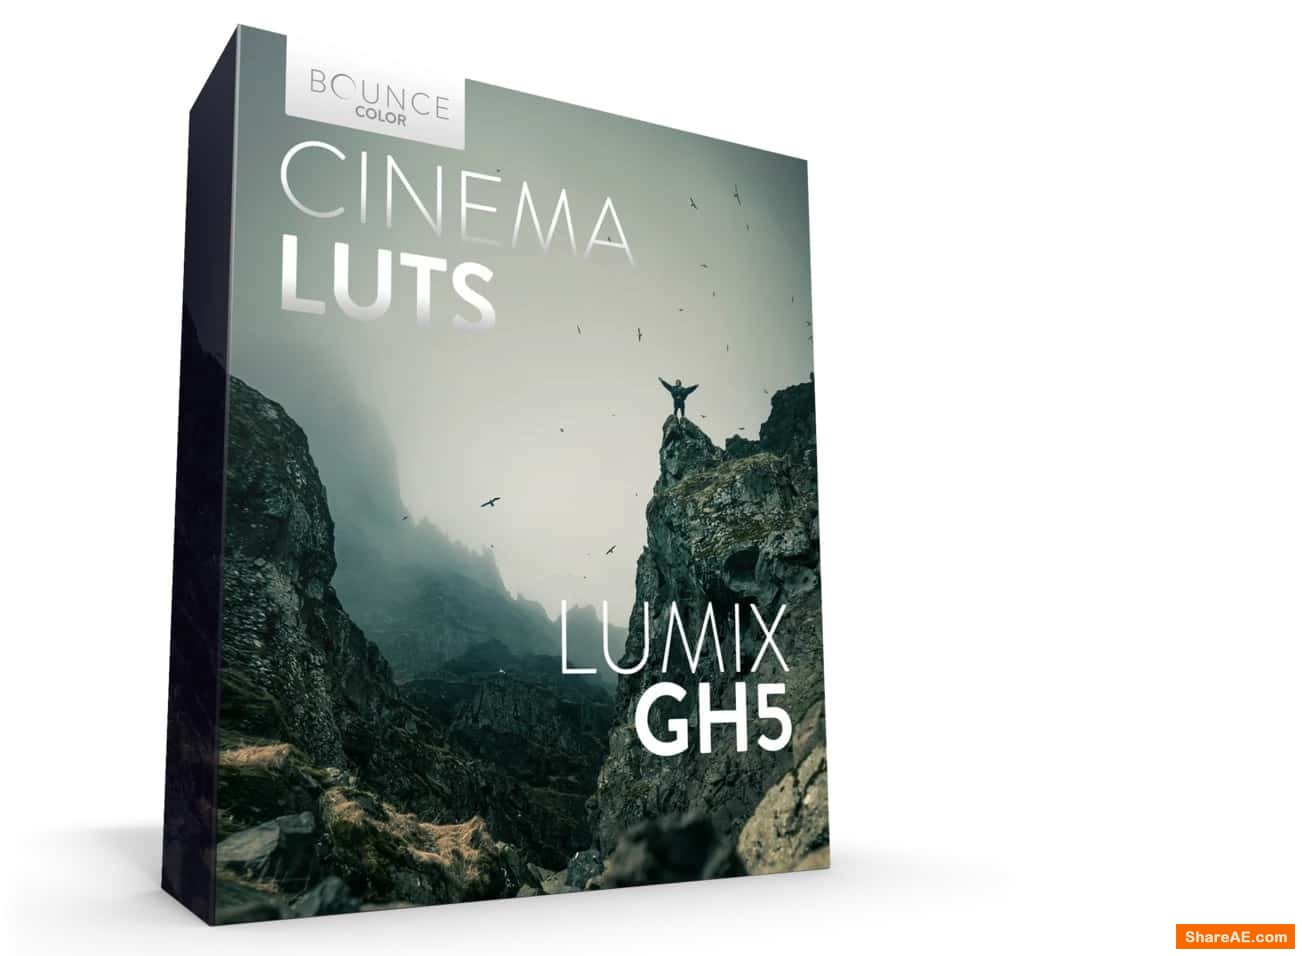 CINEMTIC LUTs V-LOG for Premiere - Bouce Color